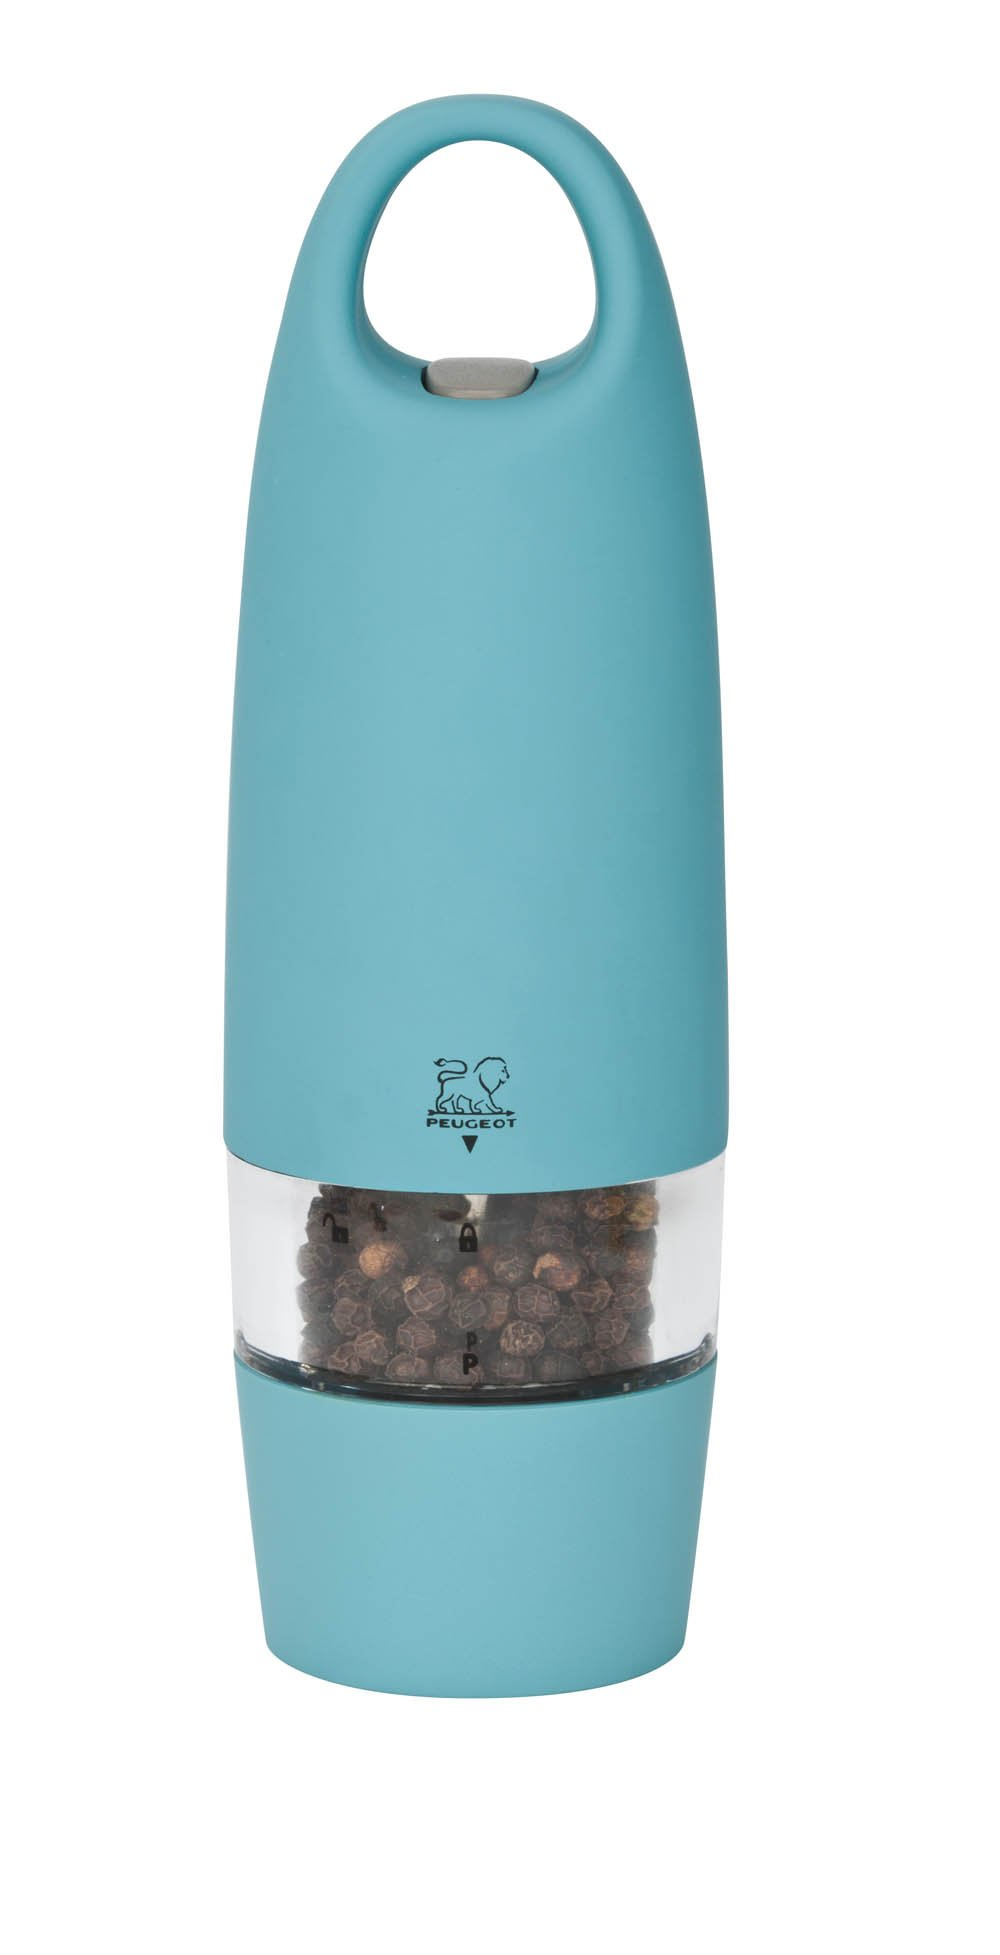 Peugeot Zest Electric Soft Touch Pepper Grinder   image